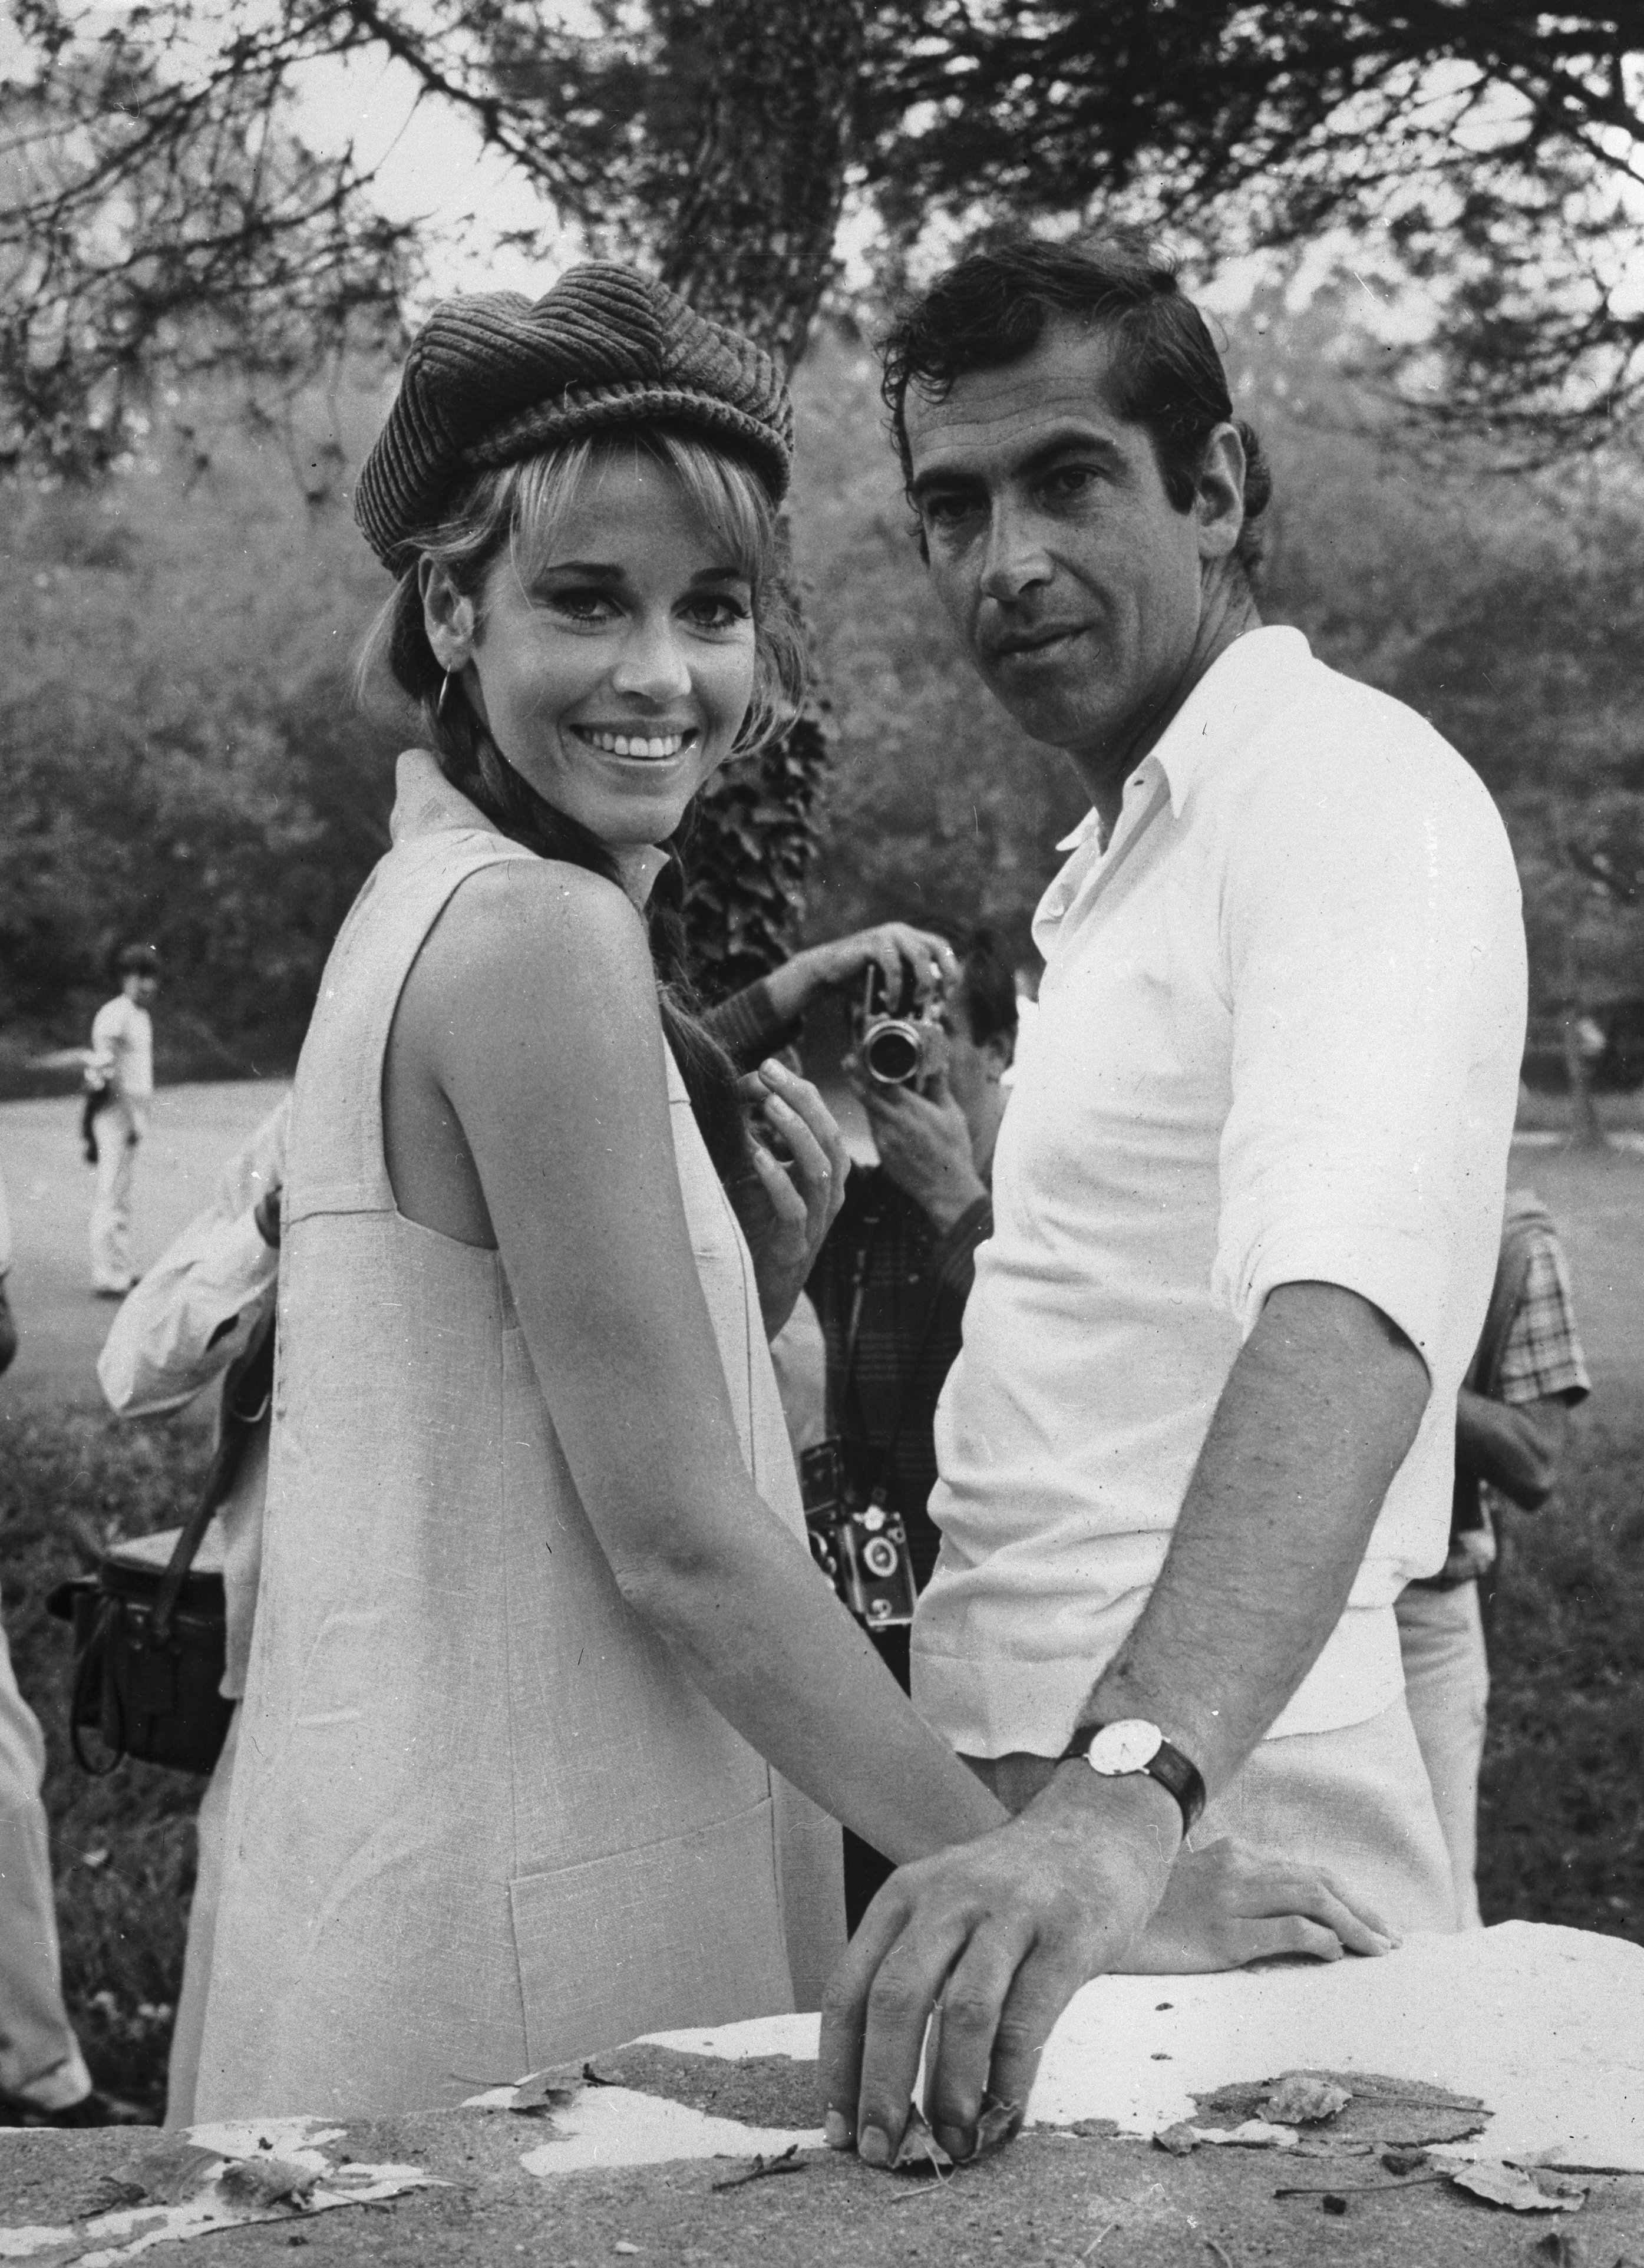 American actress Jane Fonda with her husband, the French film director Roger Vadim in 1966. | Source: Getty Images